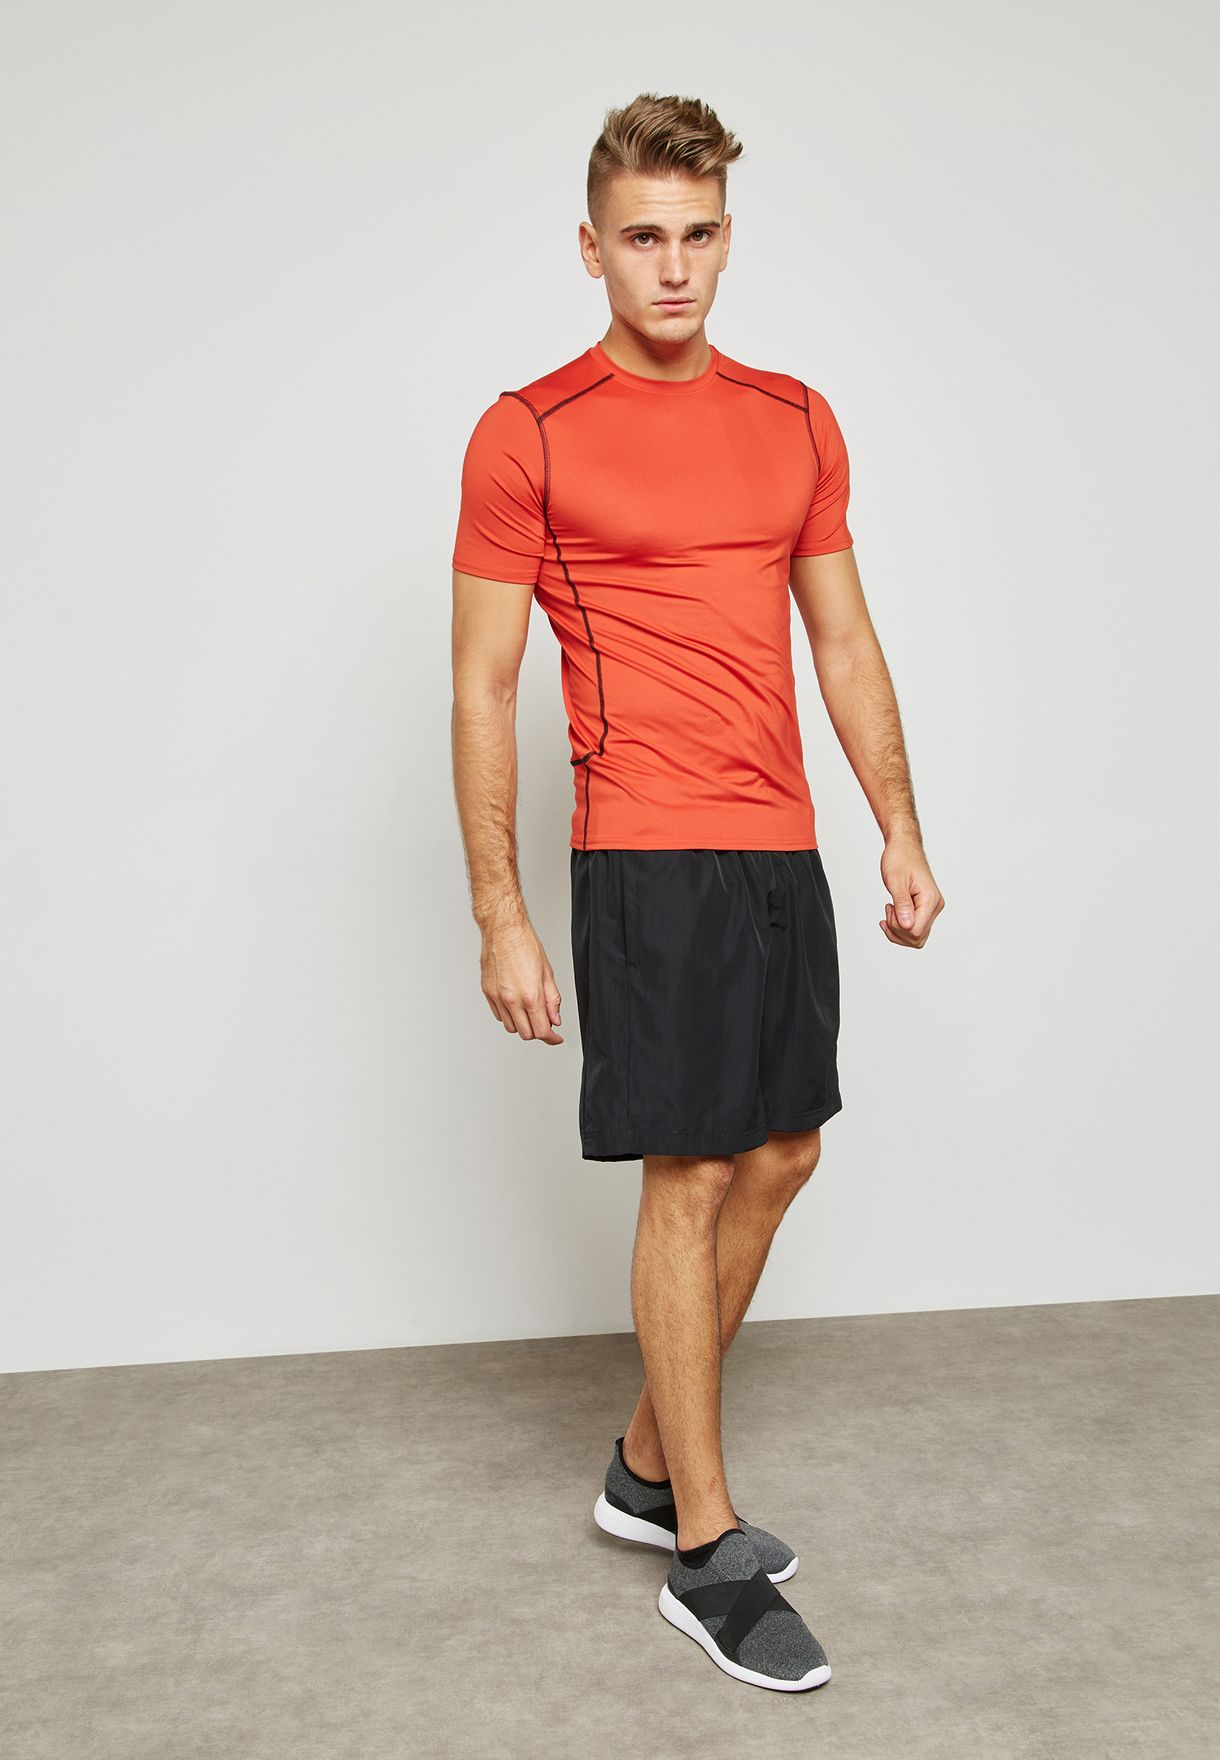 0dfecfa2ed10c Shop New Look red Active Stretch T-Shirt 391682660 for Men in ...